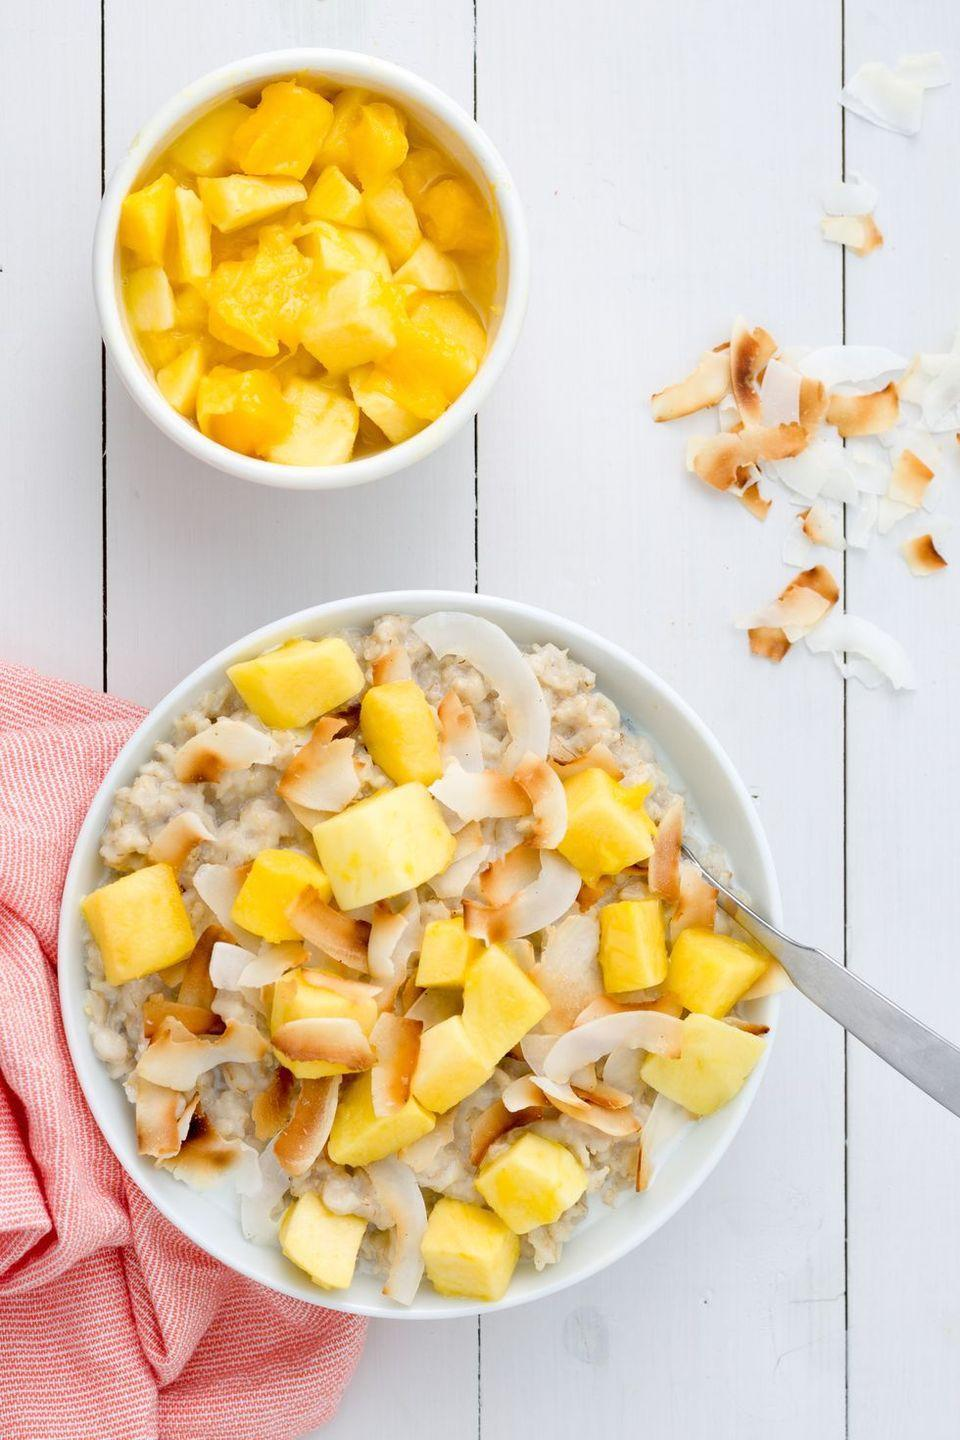 """<p>Cooking the porridge in coconut milk gives this bowl a subtly sweet flavour and extra-creamy texture. Topped with mango and toasted coconut flakes, each bite gets you one step closer to the Tropics.</p><p>Get the <a href=""""https://www.delish.com/uk/cooking/recipes/a29016864/tropical-oatmeal-recipe/"""" rel=""""nofollow noopener"""" target=""""_blank"""" data-ylk=""""slk:Tropical Porridge"""" class=""""link rapid-noclick-resp"""">Tropical Porridge</a> recipe.</p>"""